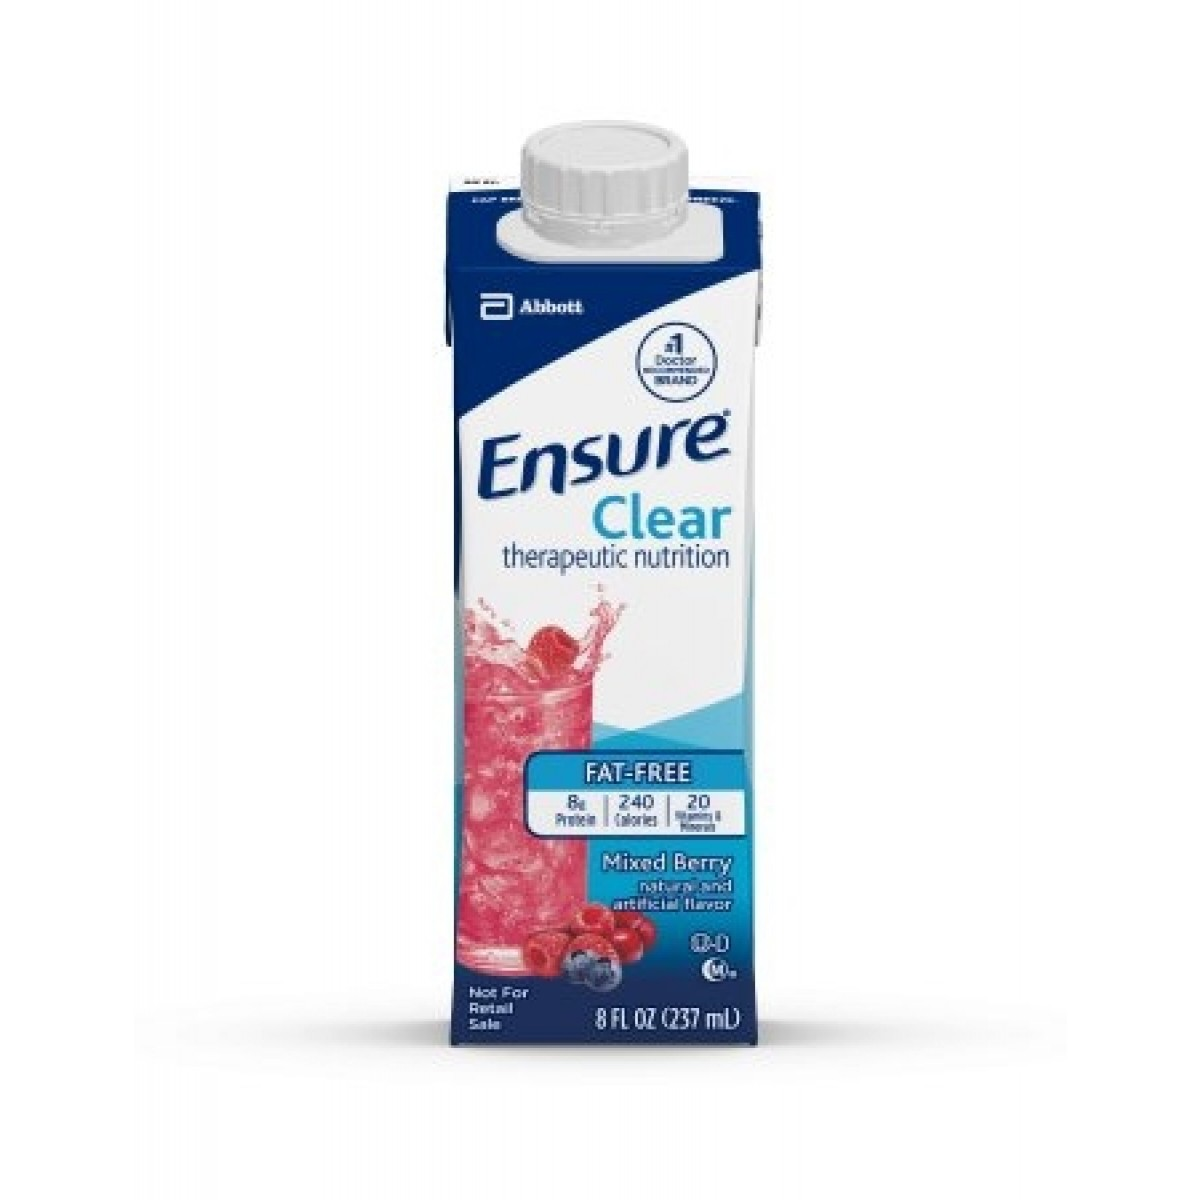 Ensure Protein Drink Nutrition Facts